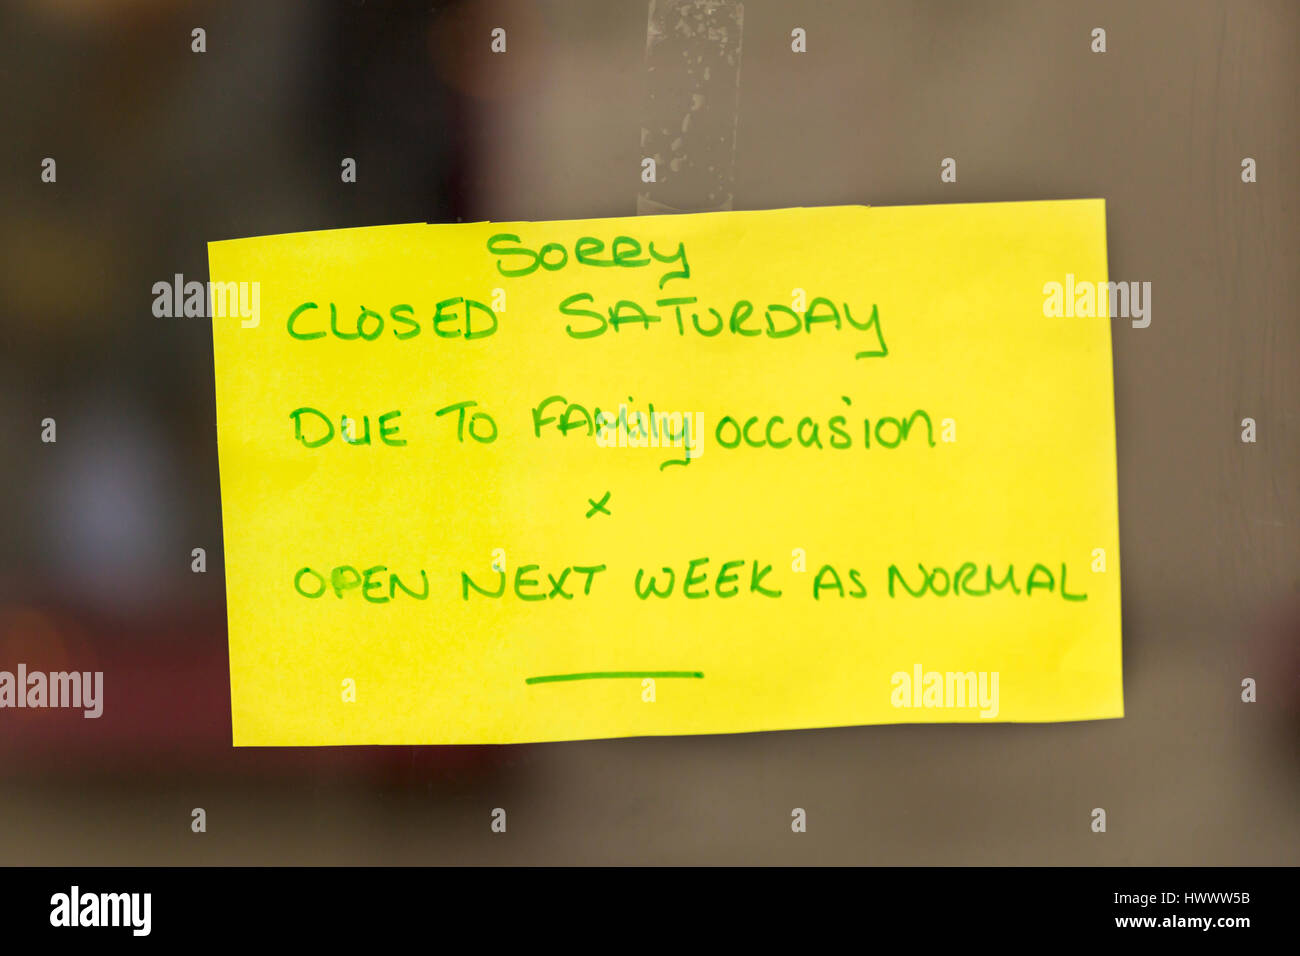 Sorry closed Saturday due to family occasion x open next week as normal hand written note on yellow paper stuck Stock Photo